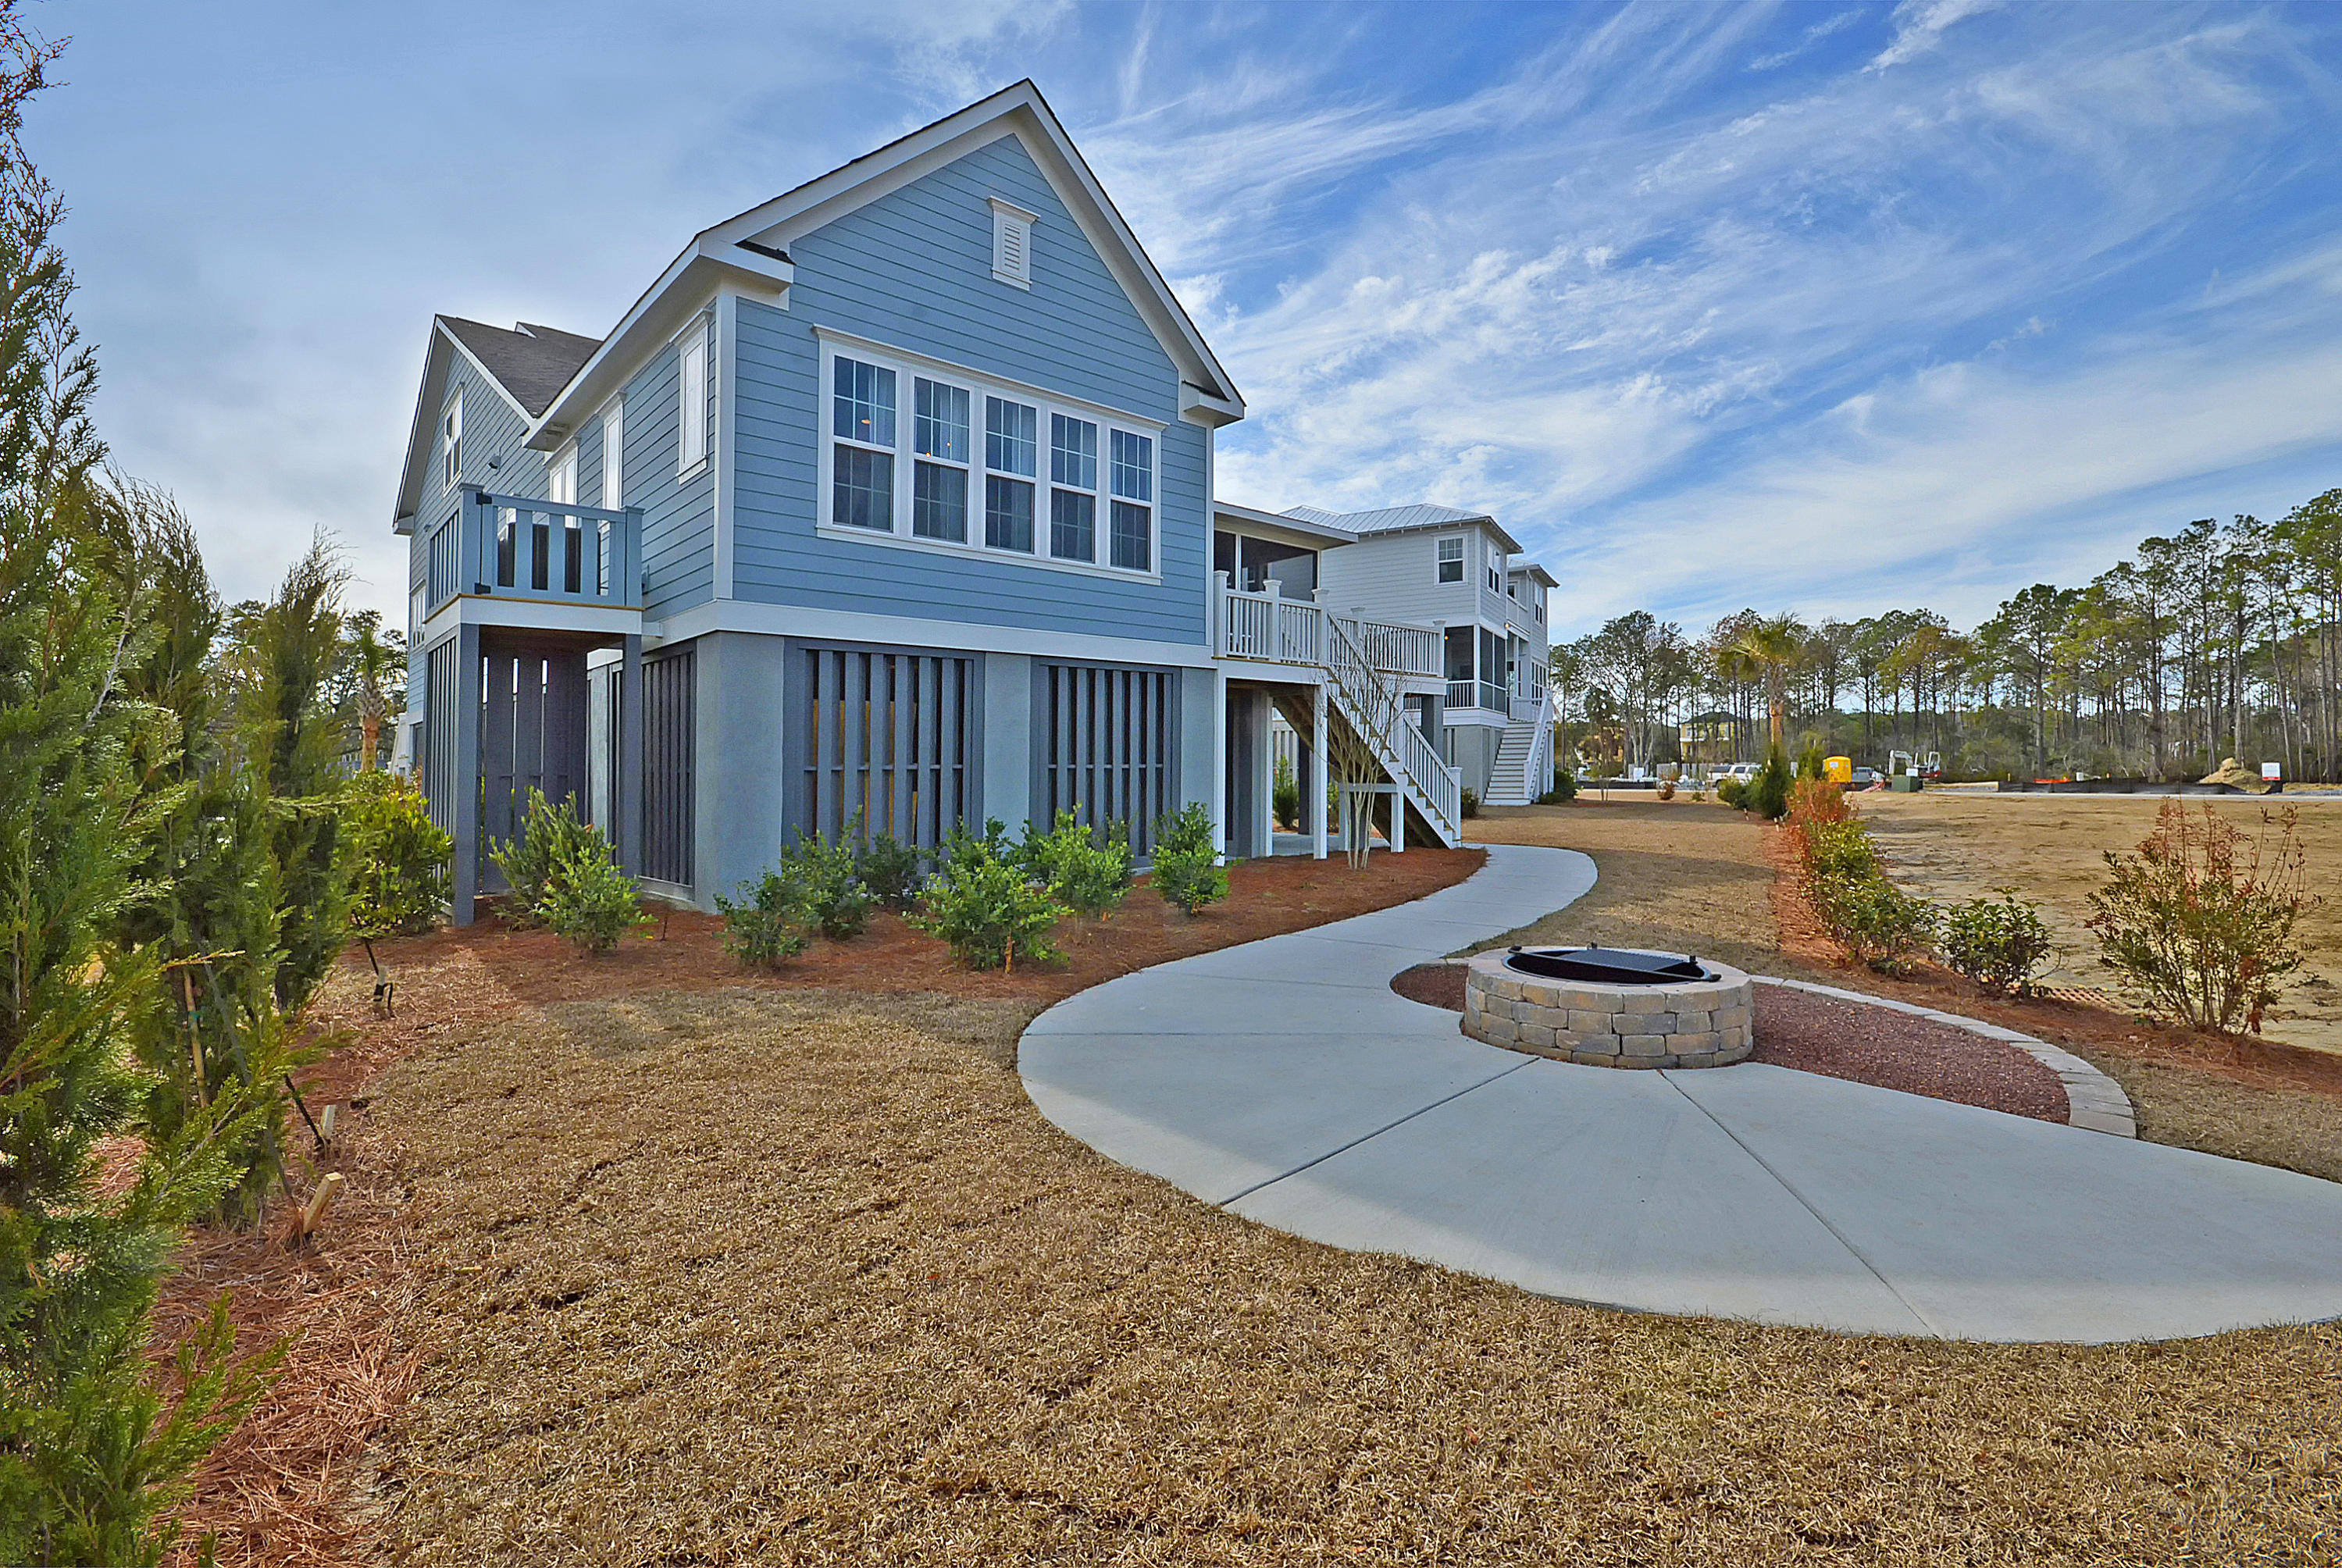 Stratton by the Sound Homes For Sale - 1435 Stratton, Mount Pleasant, SC - 44